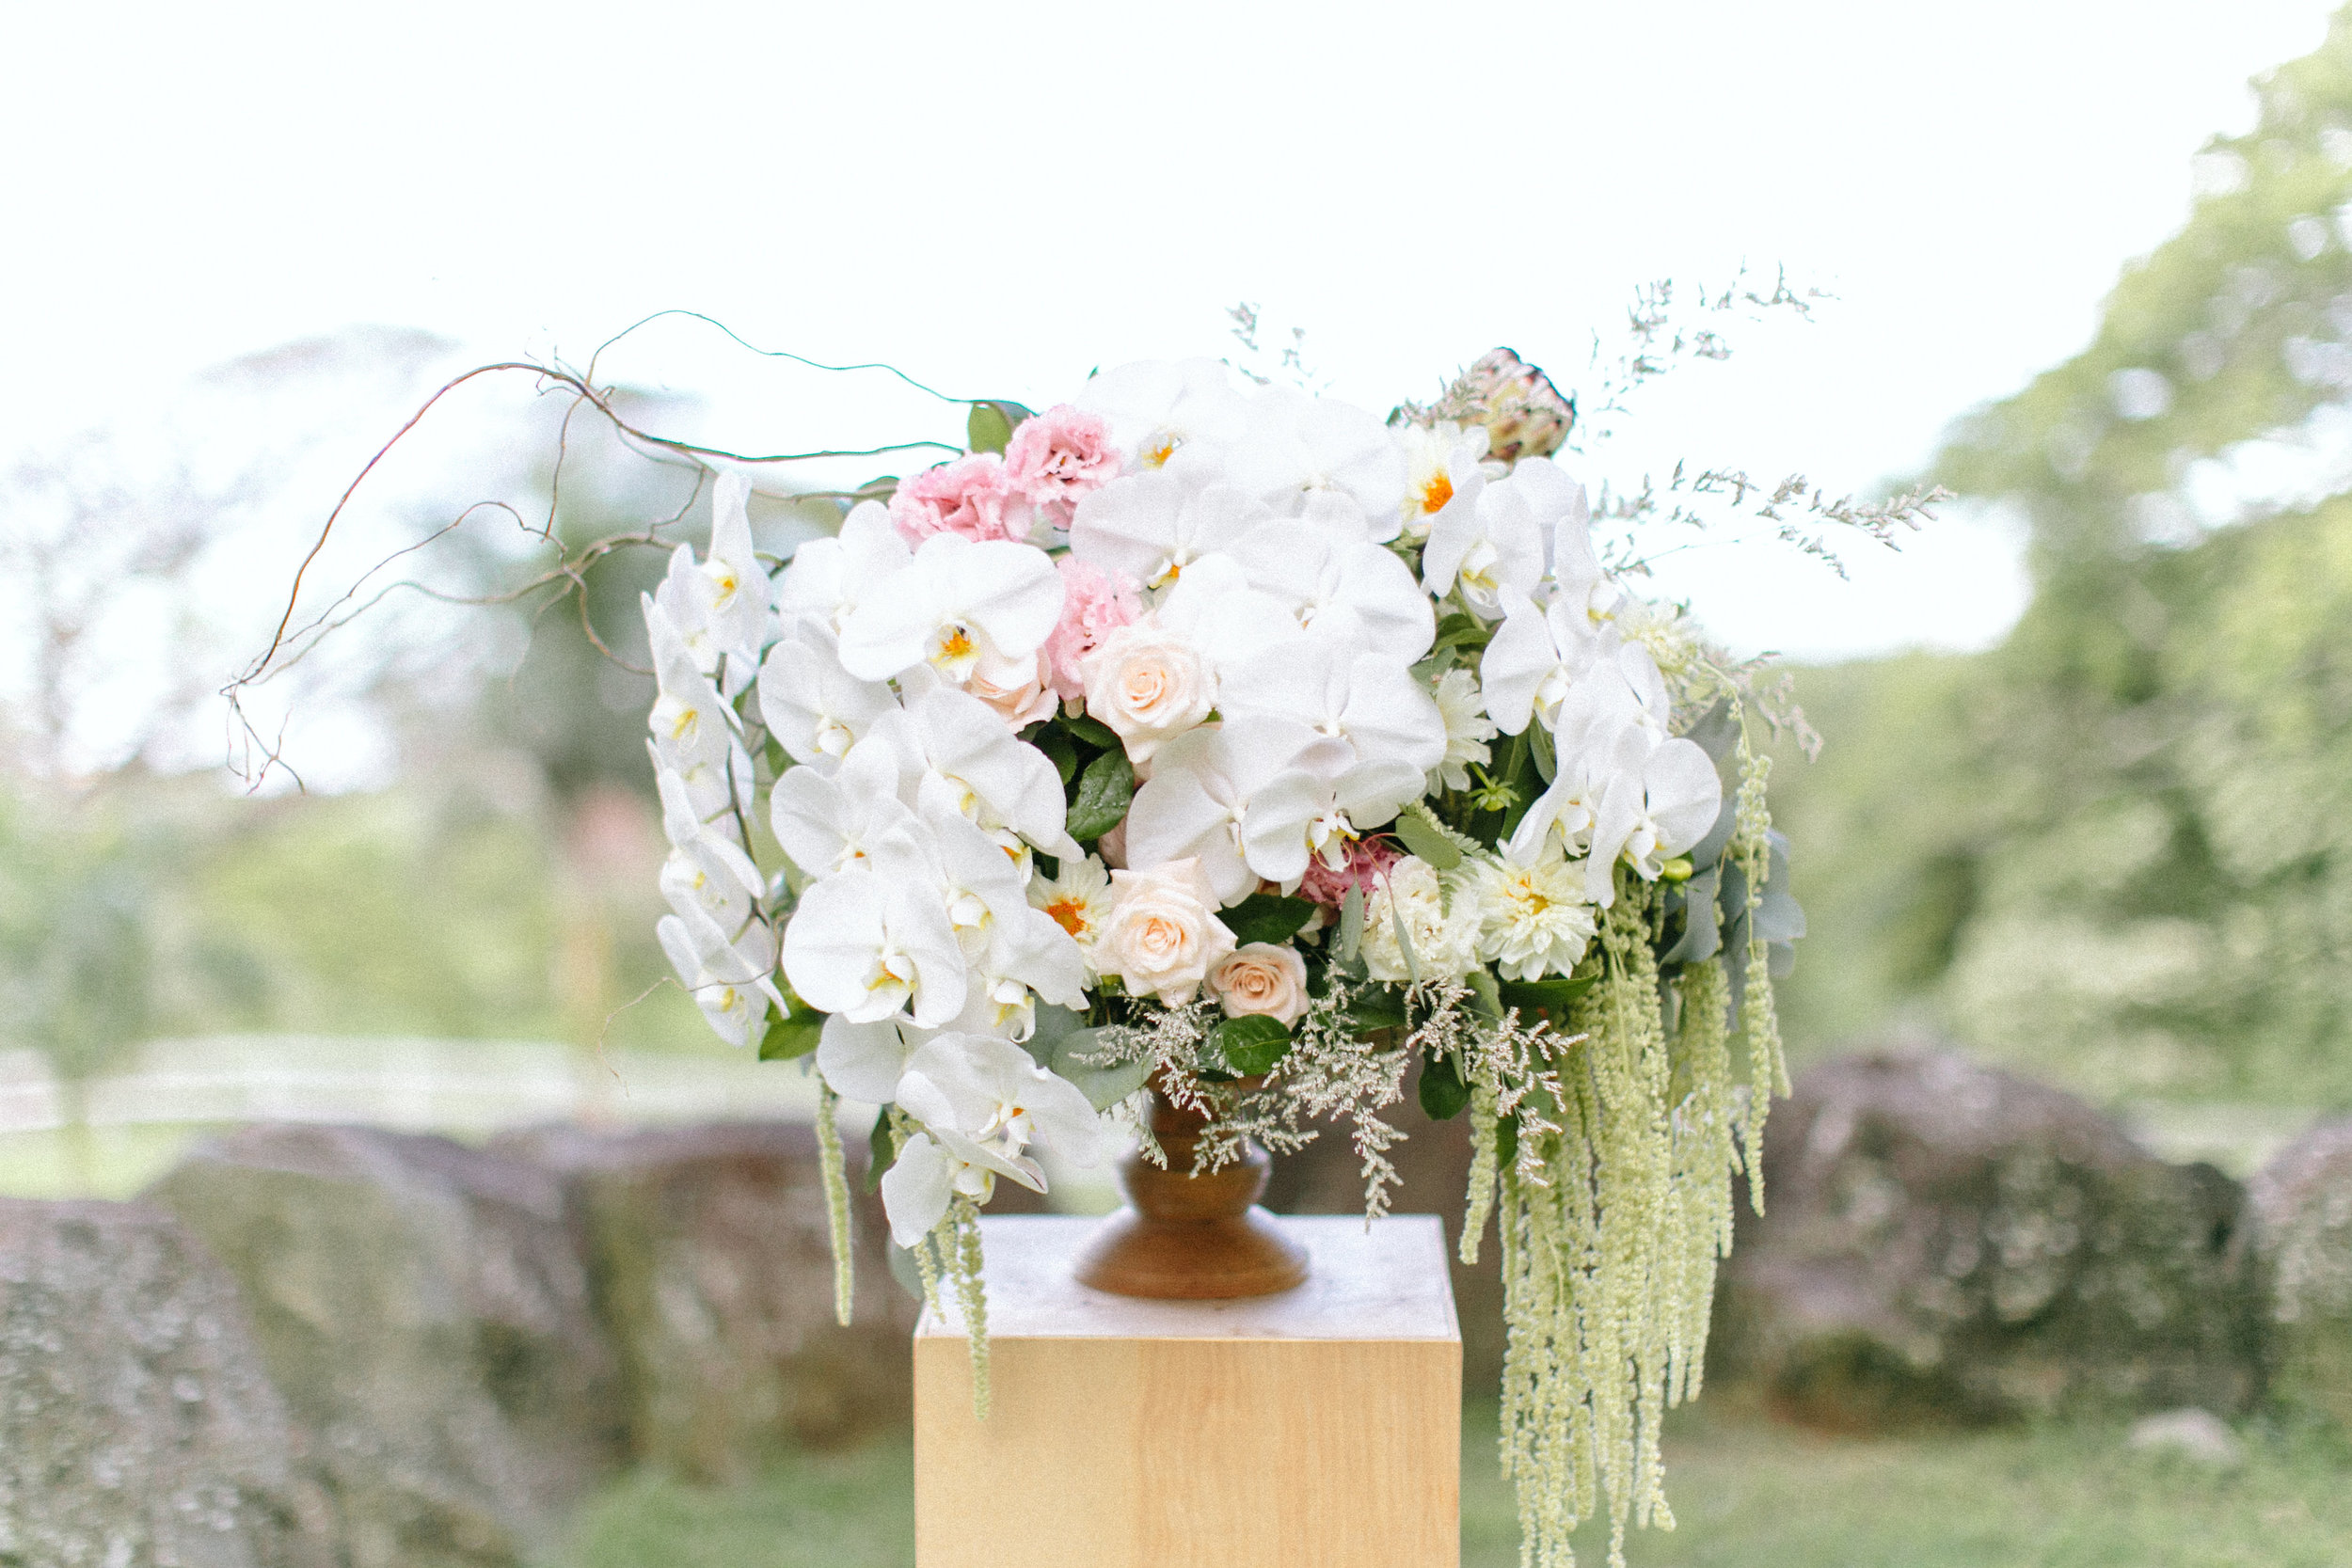 Orchid Arrangements are Essential to Our Modern Boho Collection